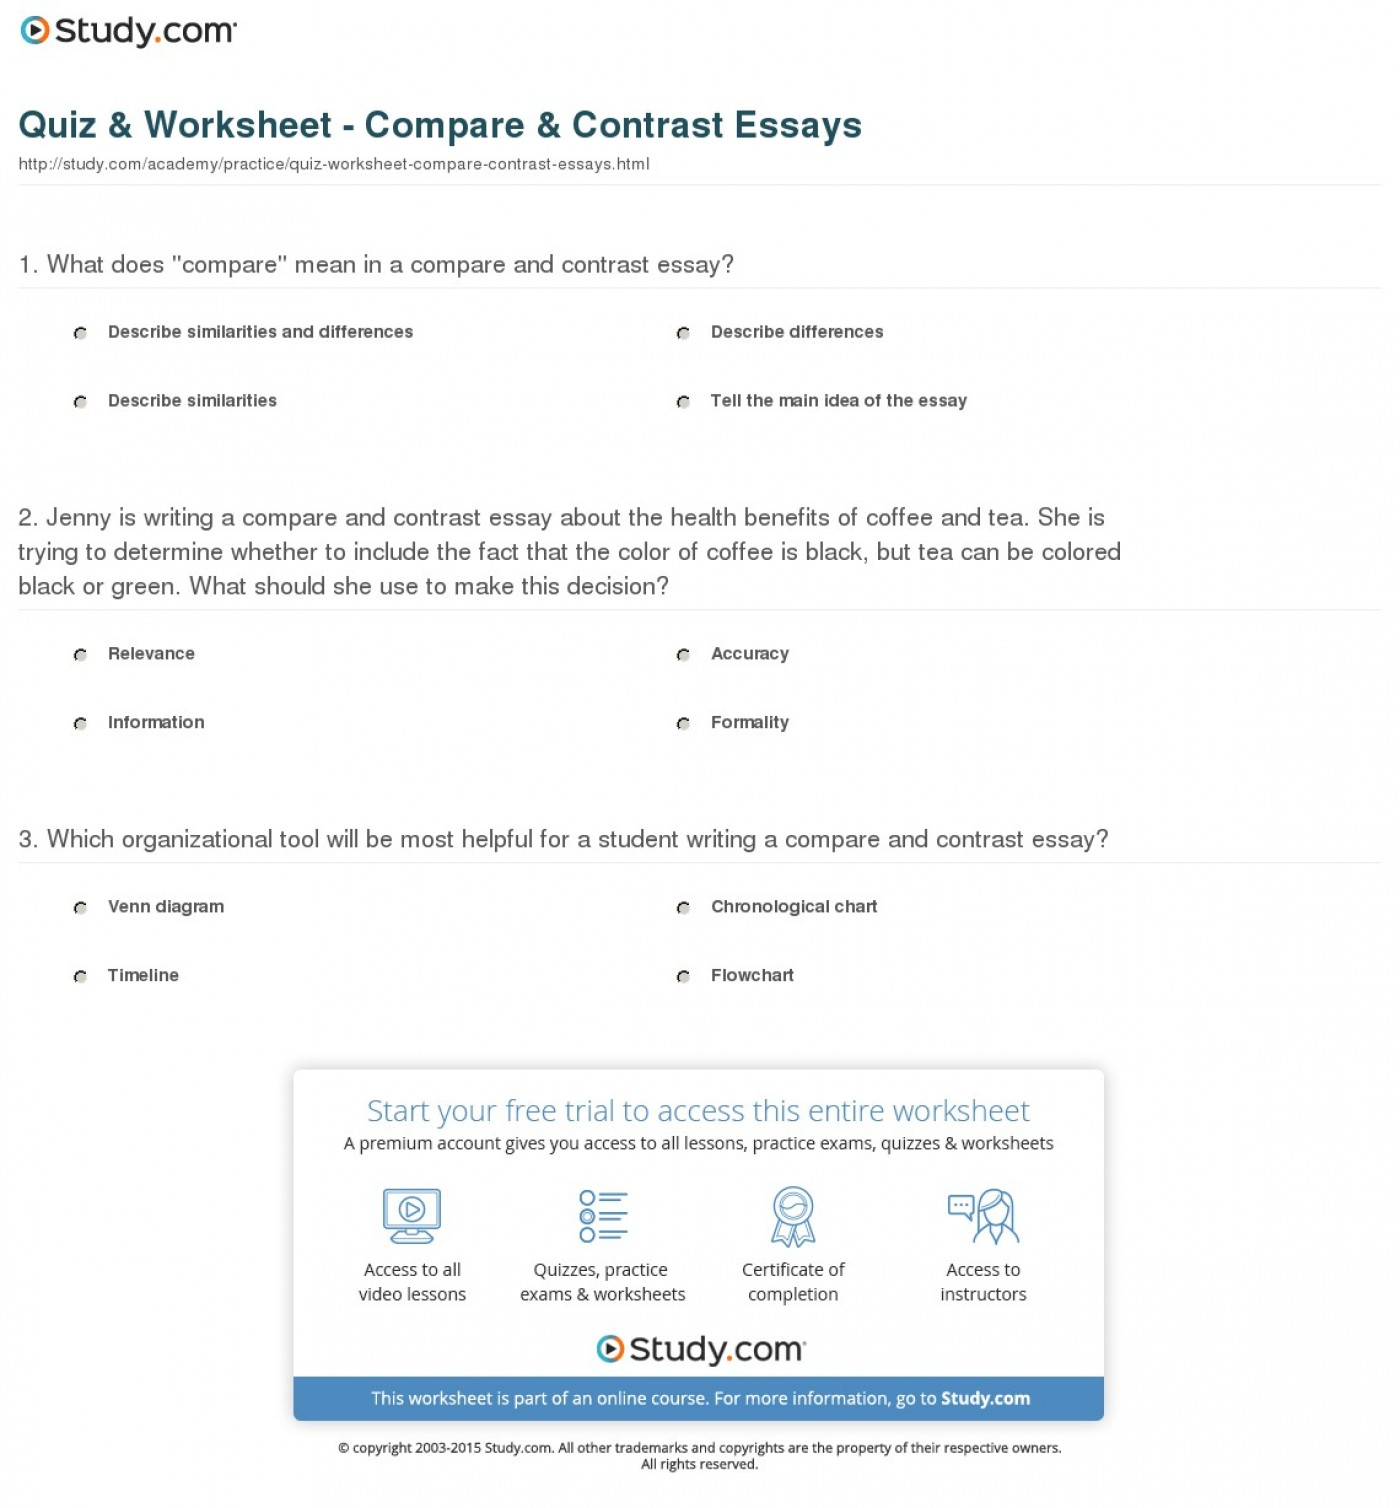 015 Essay Example Compare And Contrast Quiz Worksheet Frightening Prompts 5th Grade Rubric College Ideas 12th 1400